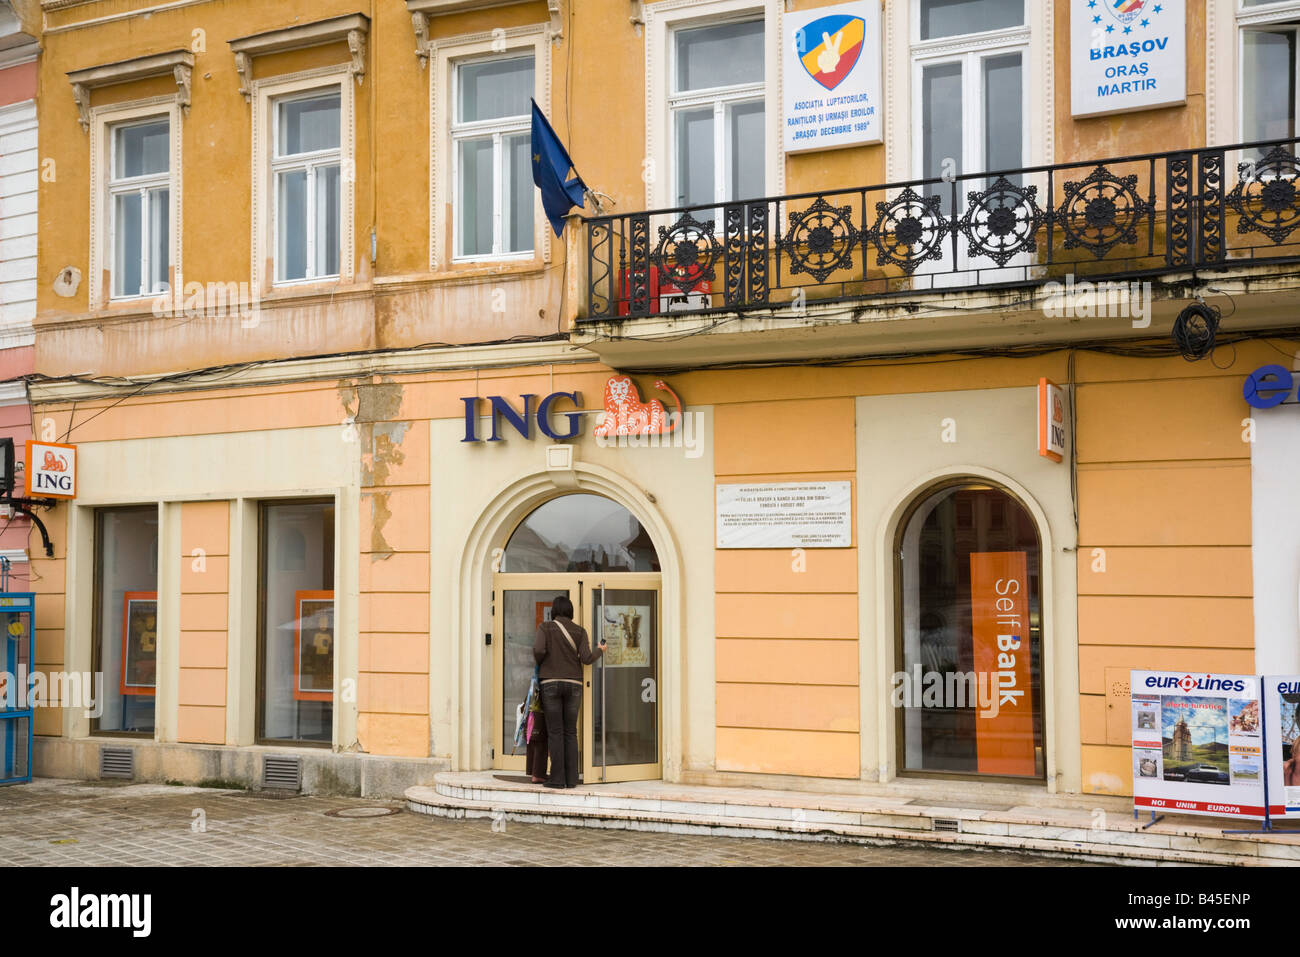 Romania Europe ING Bank retail banking branch building exterior in historic city - Stock Image